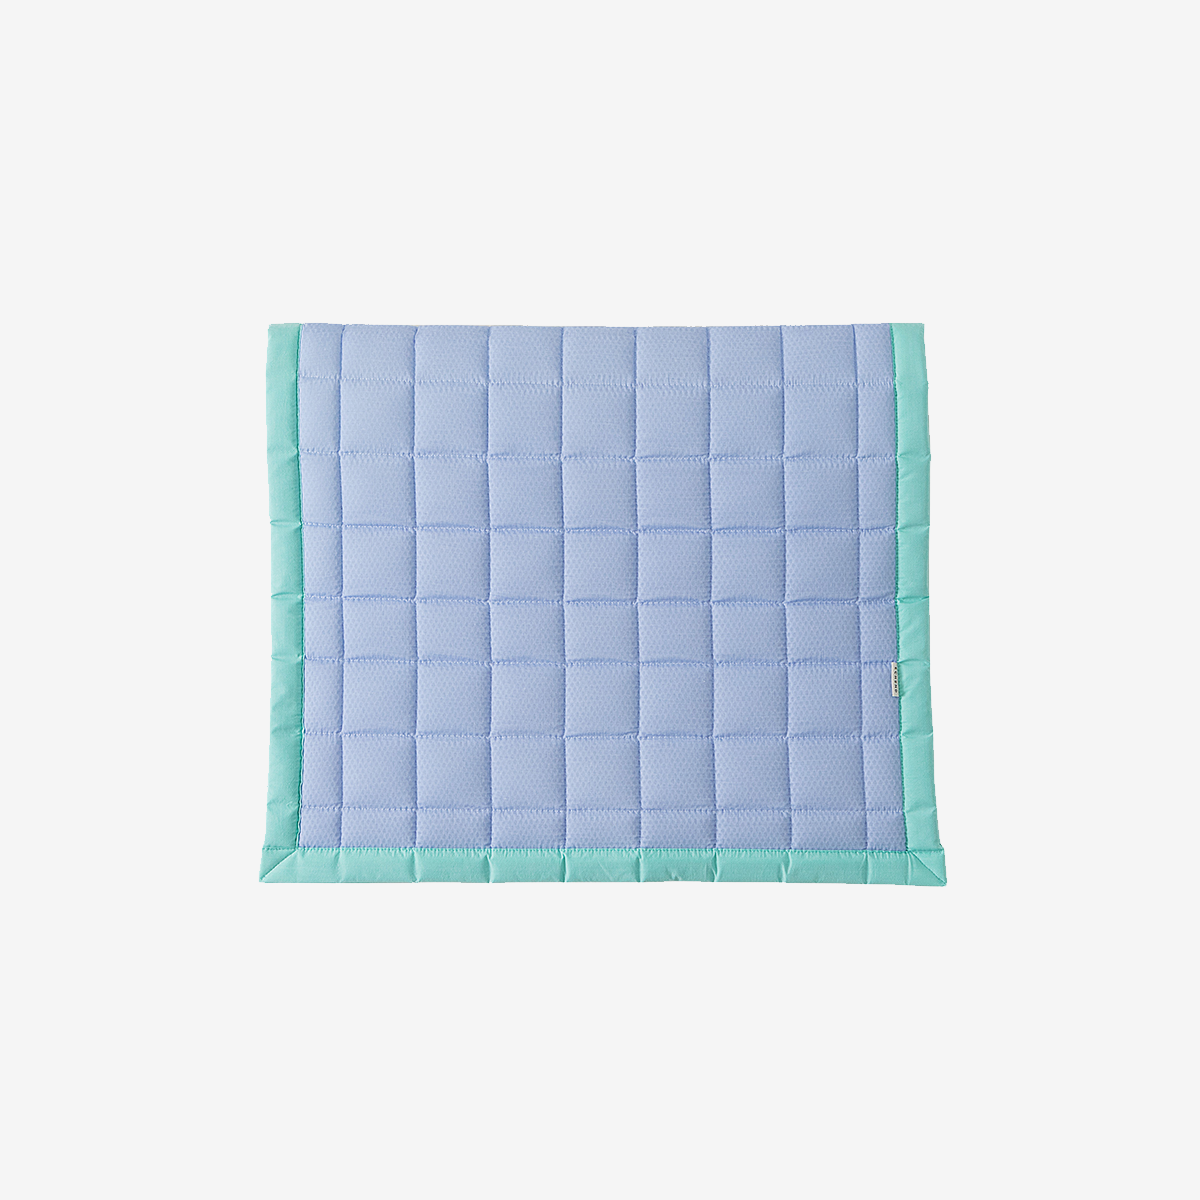 ECHOND Air Mesh Pad_Blue